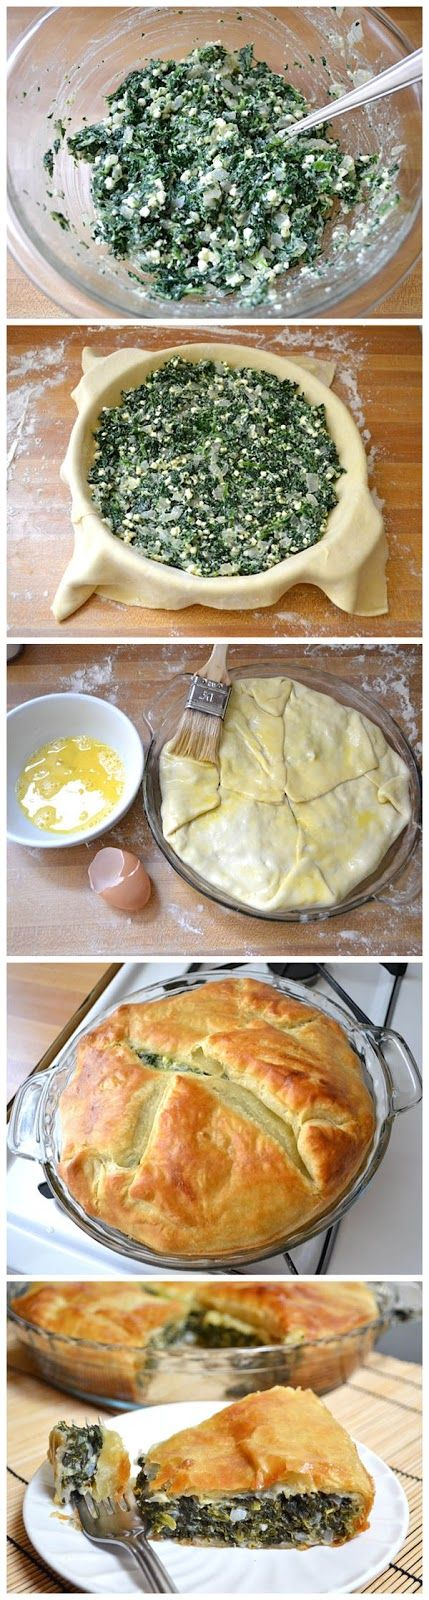 Easy Delicious Homemade Spinach Pie with Puff Past